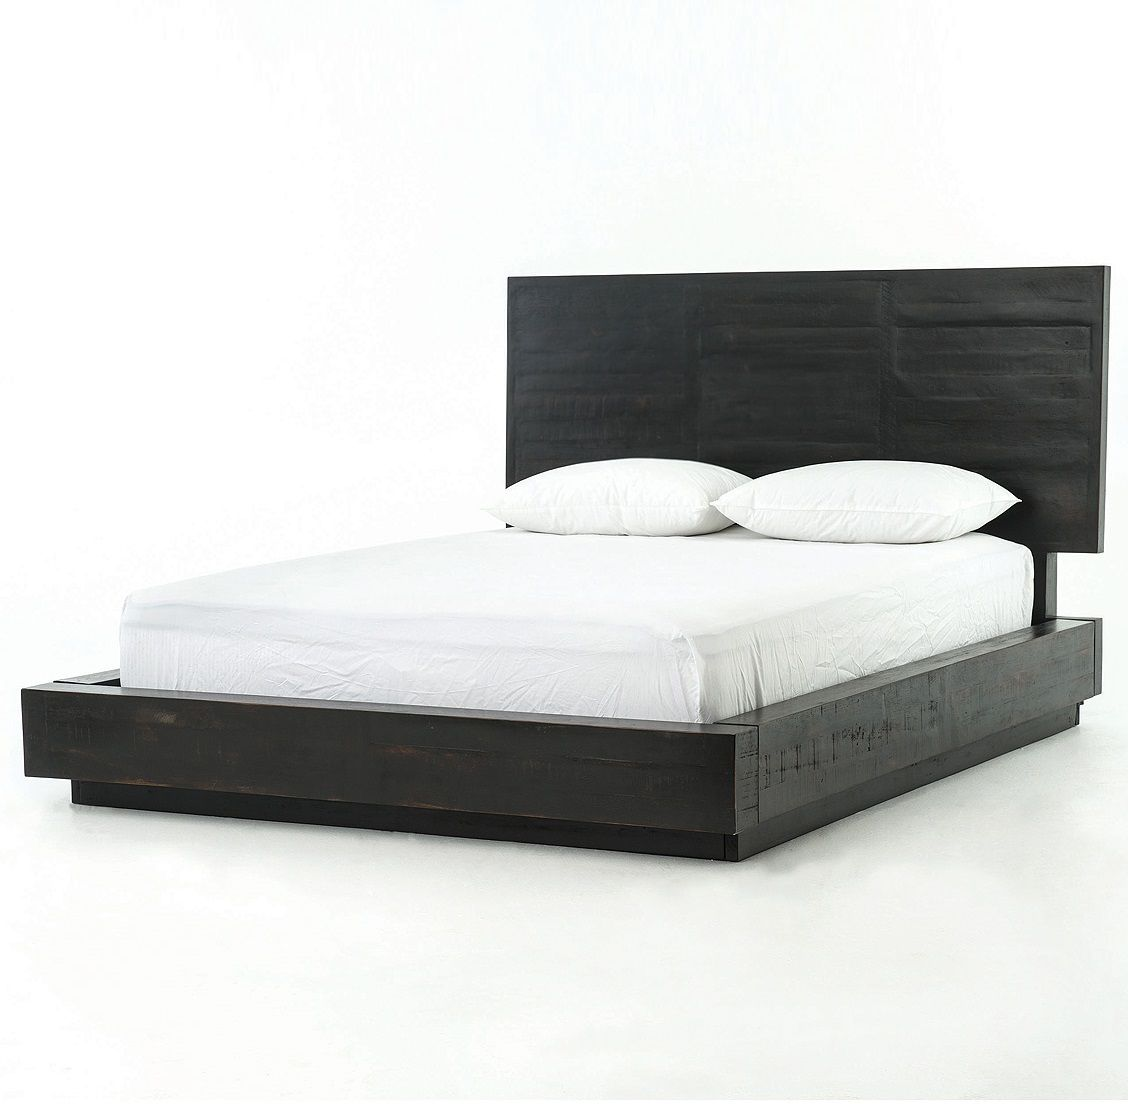 modern black wood queen size platform bed frame. modern black wood queen size platform bed frame  queen size